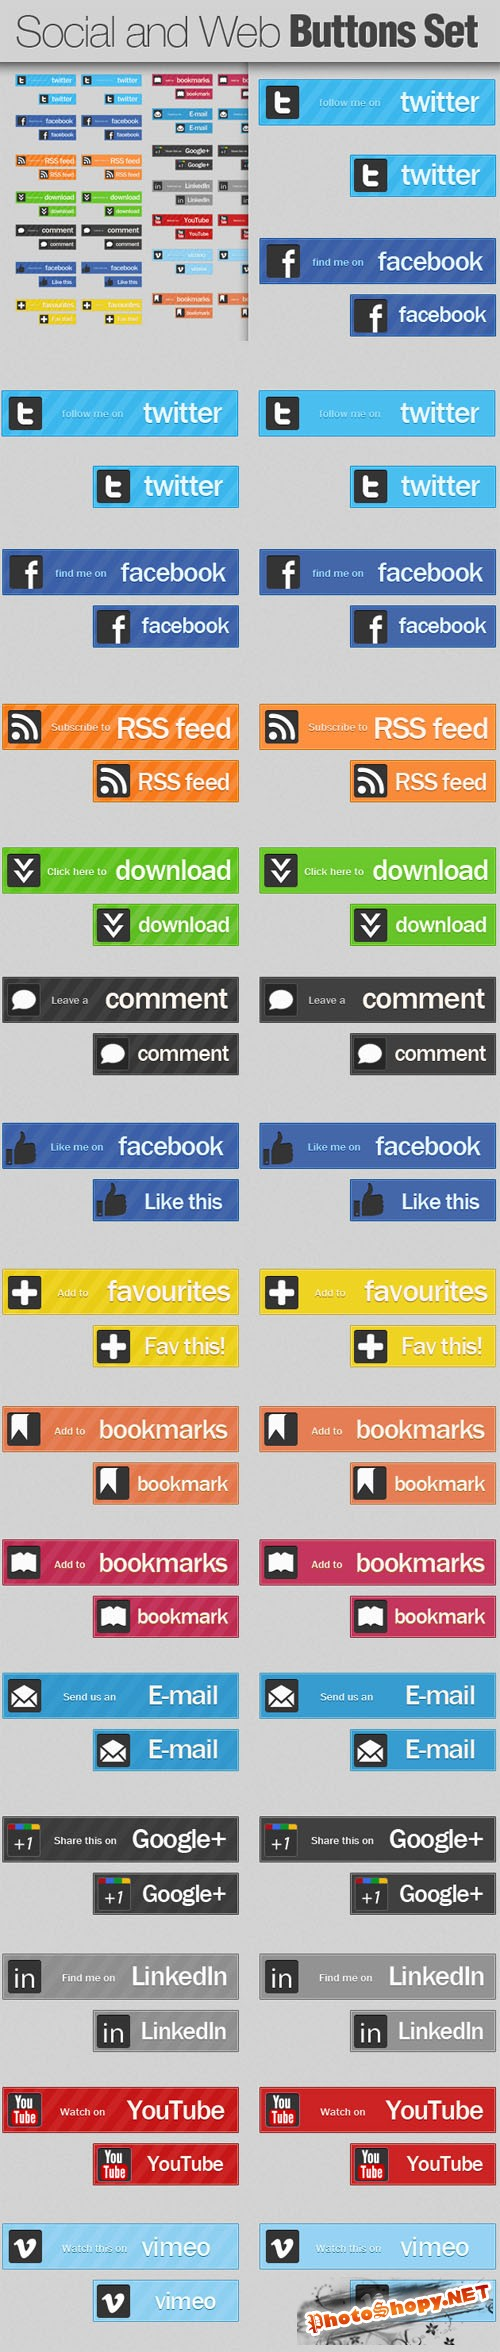 Designtnt - Social and Web Buttons